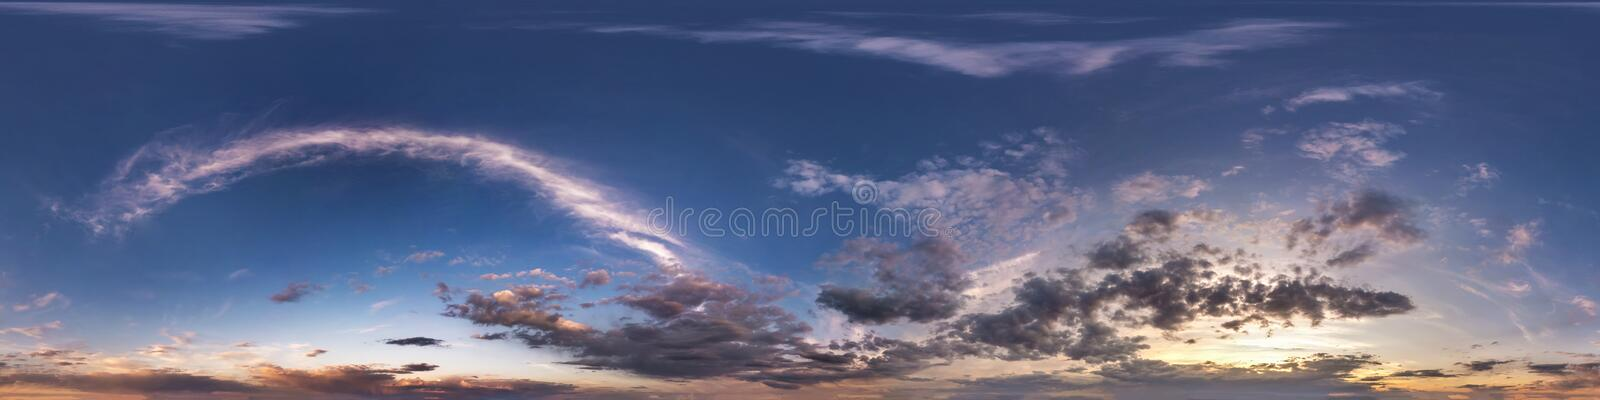 Seamless hdri panorama 360 degrees angle view blue evening sky with beautiful clouds before sunset with zenith for use in 3d stock photos